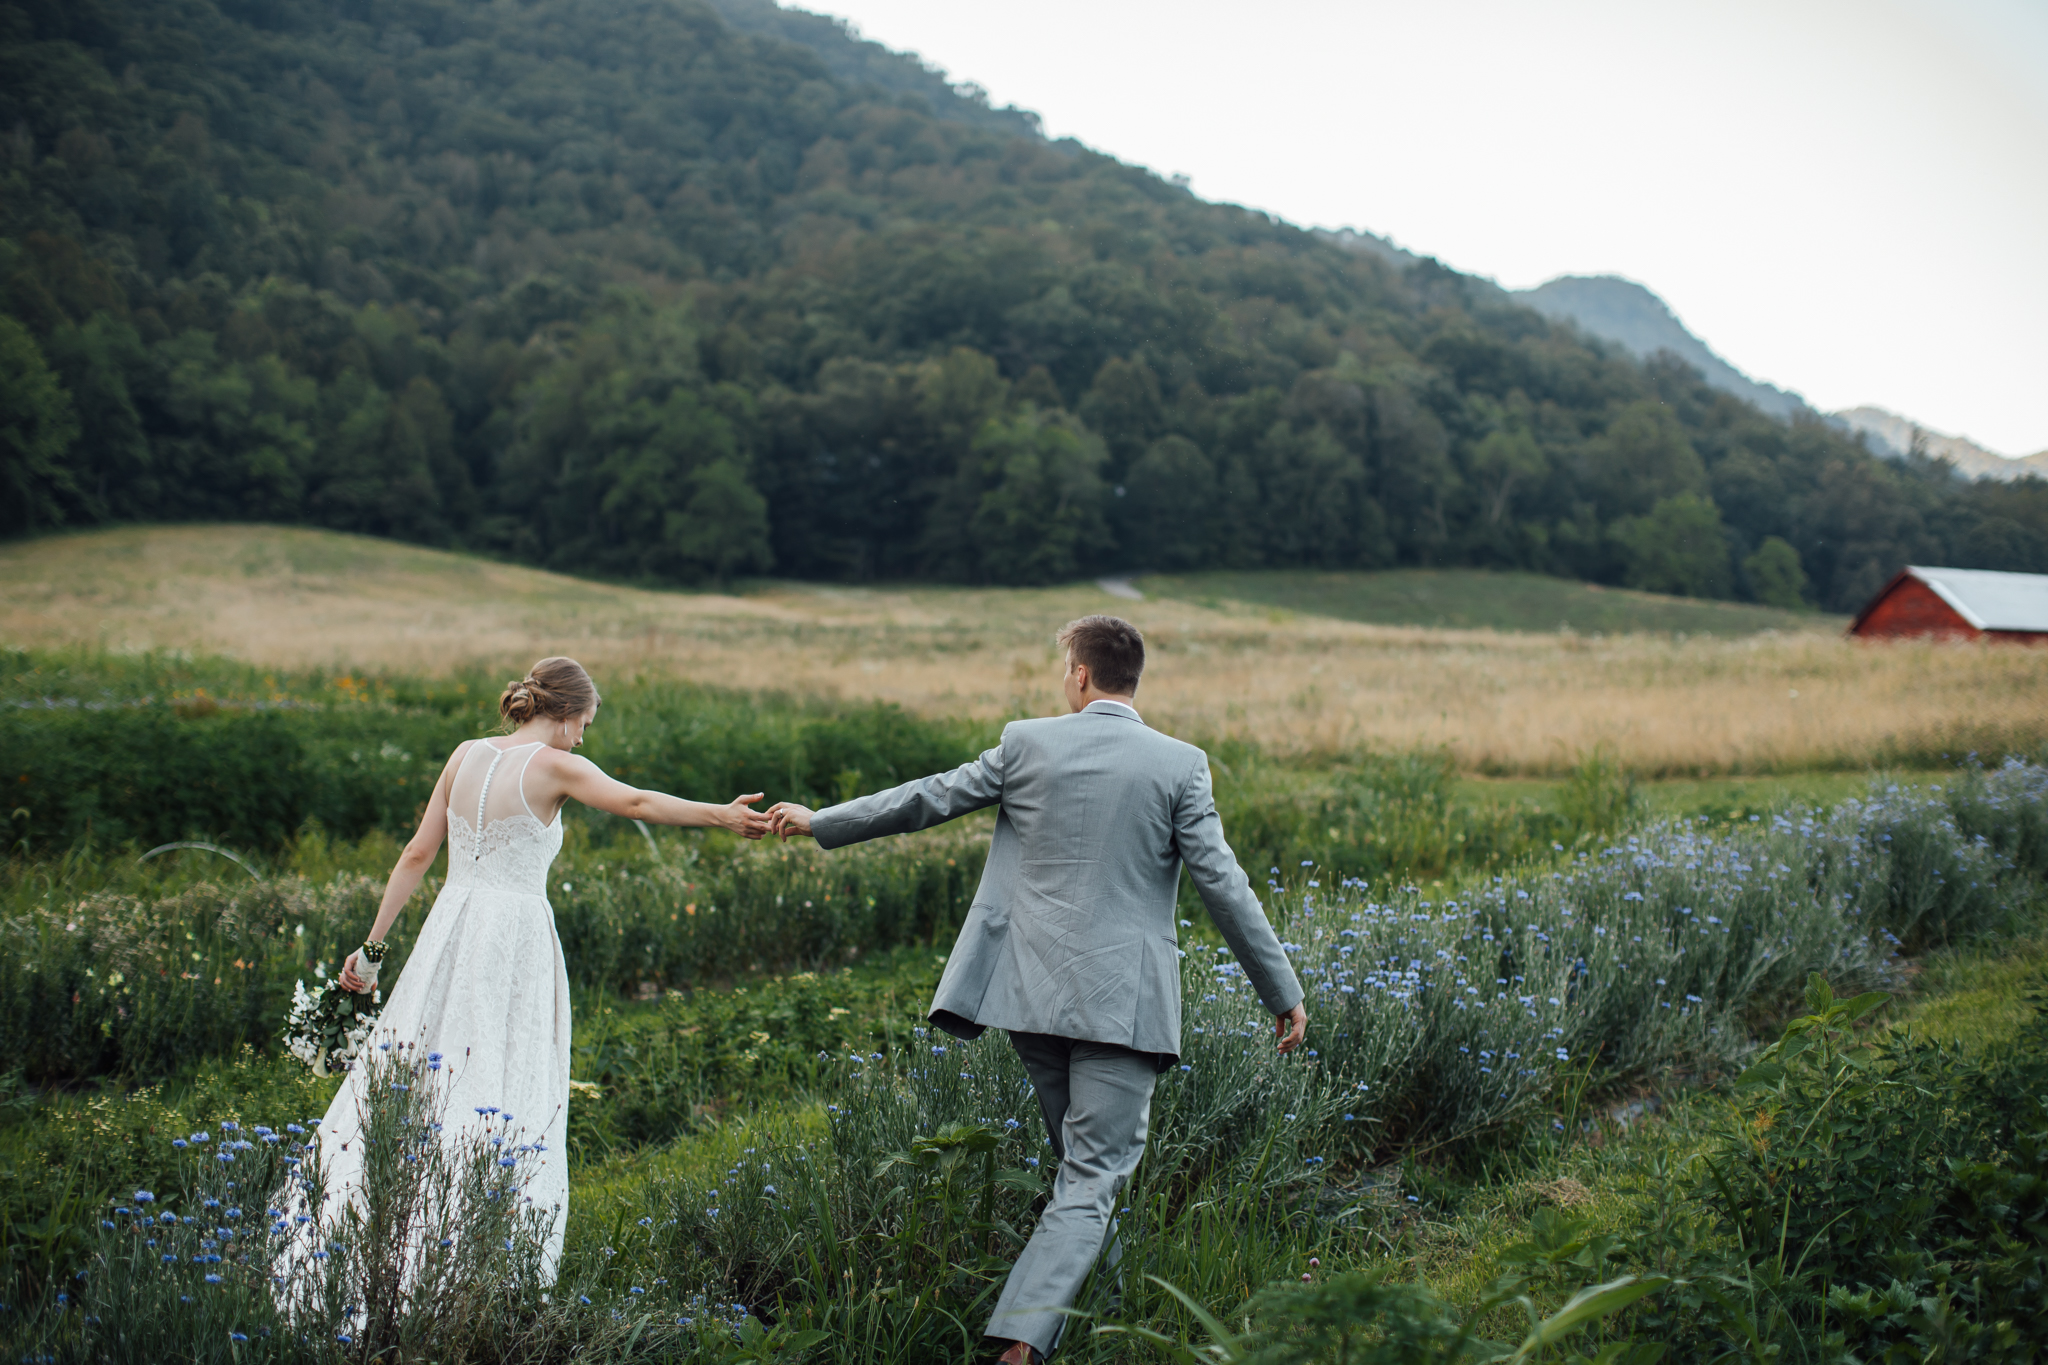 asheville-wedding-photographers-TheBasilicaofSt.Lawrence-IvyCreekFamilyFarm-thewarmtharoundyou (40 of 52).jpg